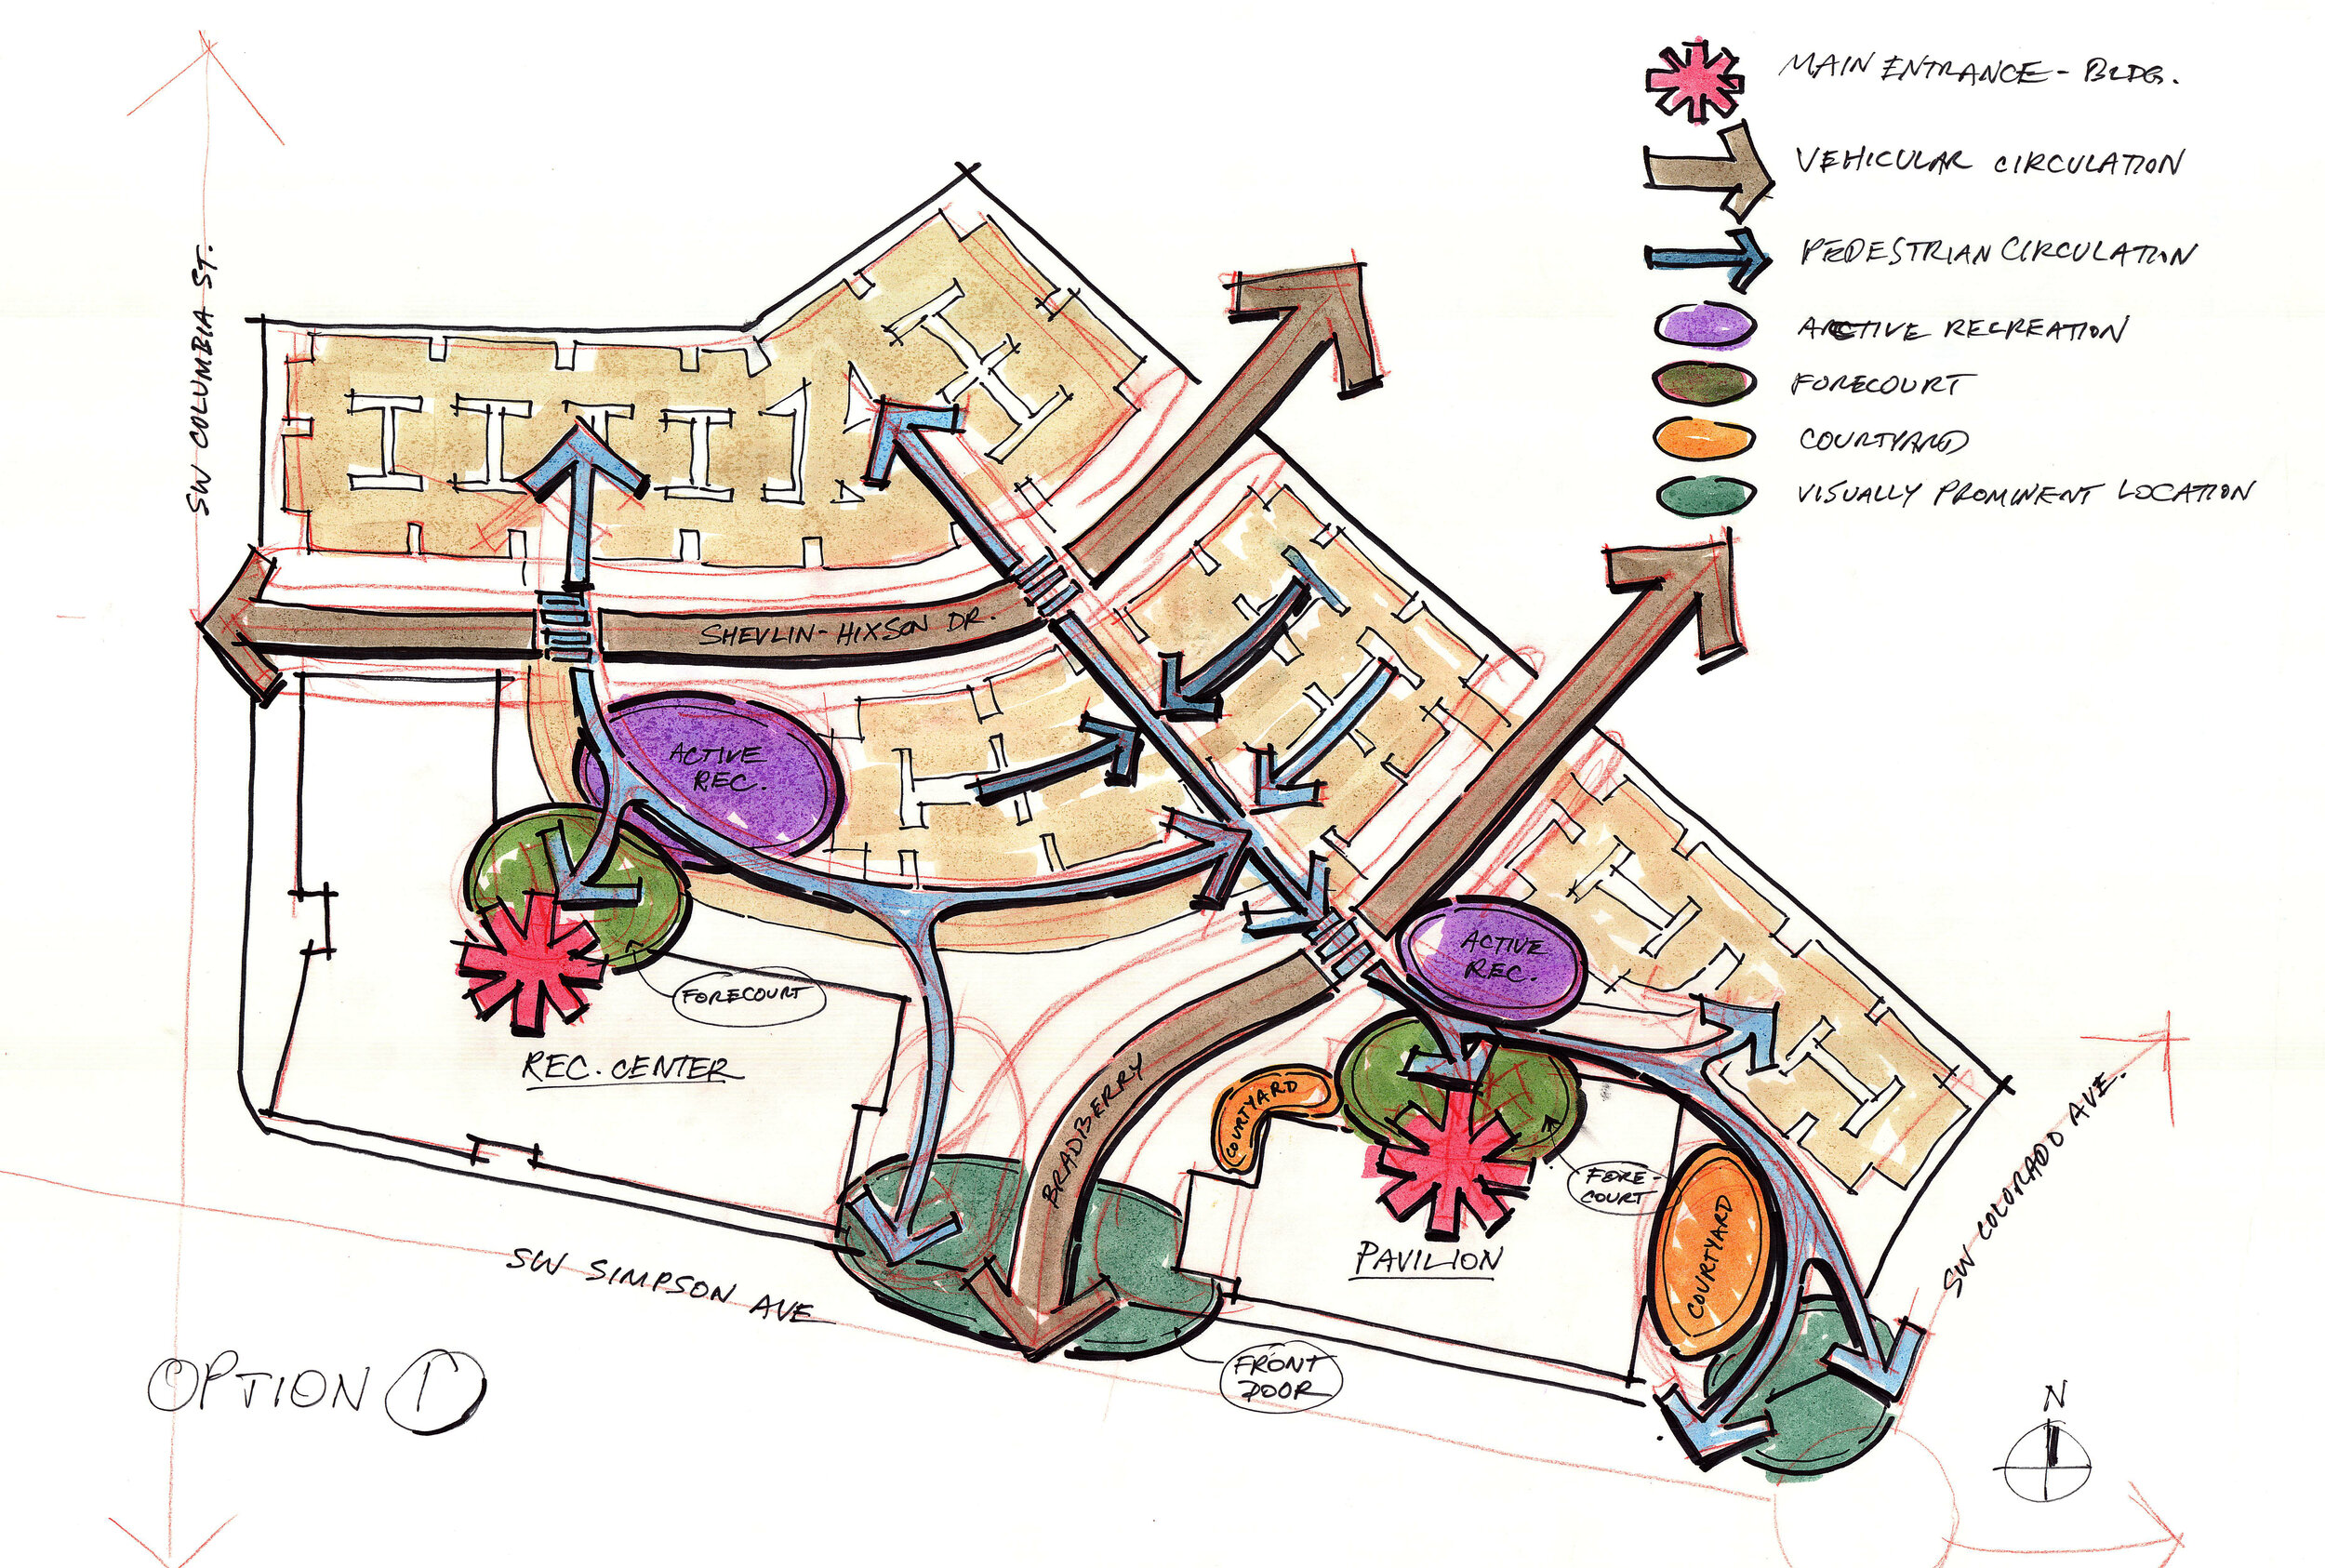 hand drawn diagram of master plan for simpson pavilion with circulation patterns